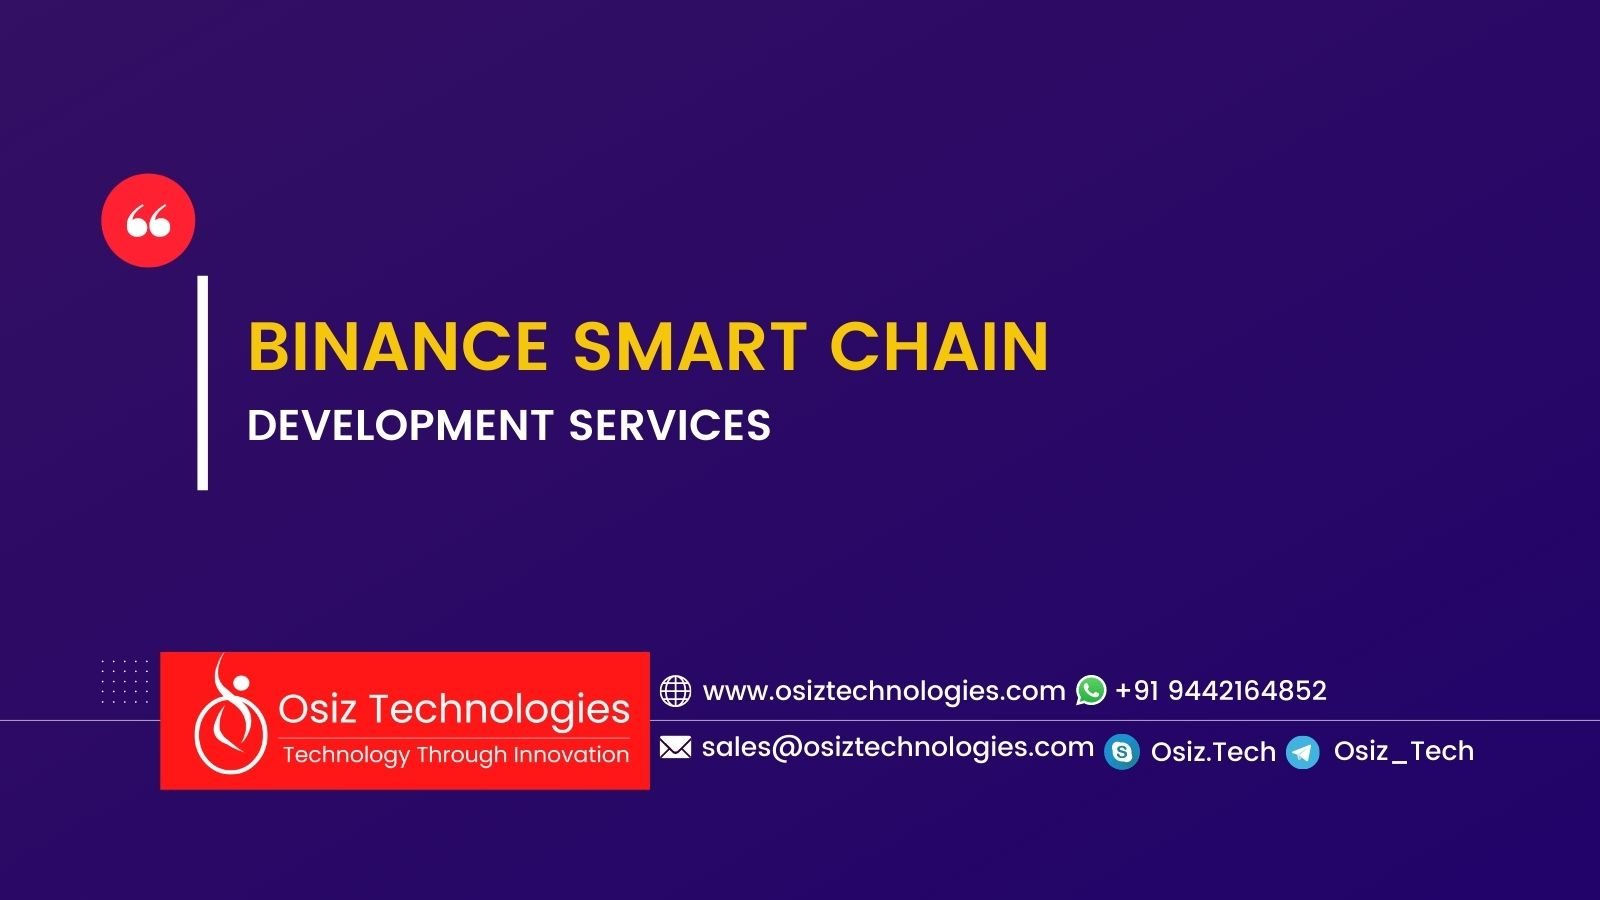 BINANCE SMART CHAIN DEVELOPMENT SERVICES COMPANY